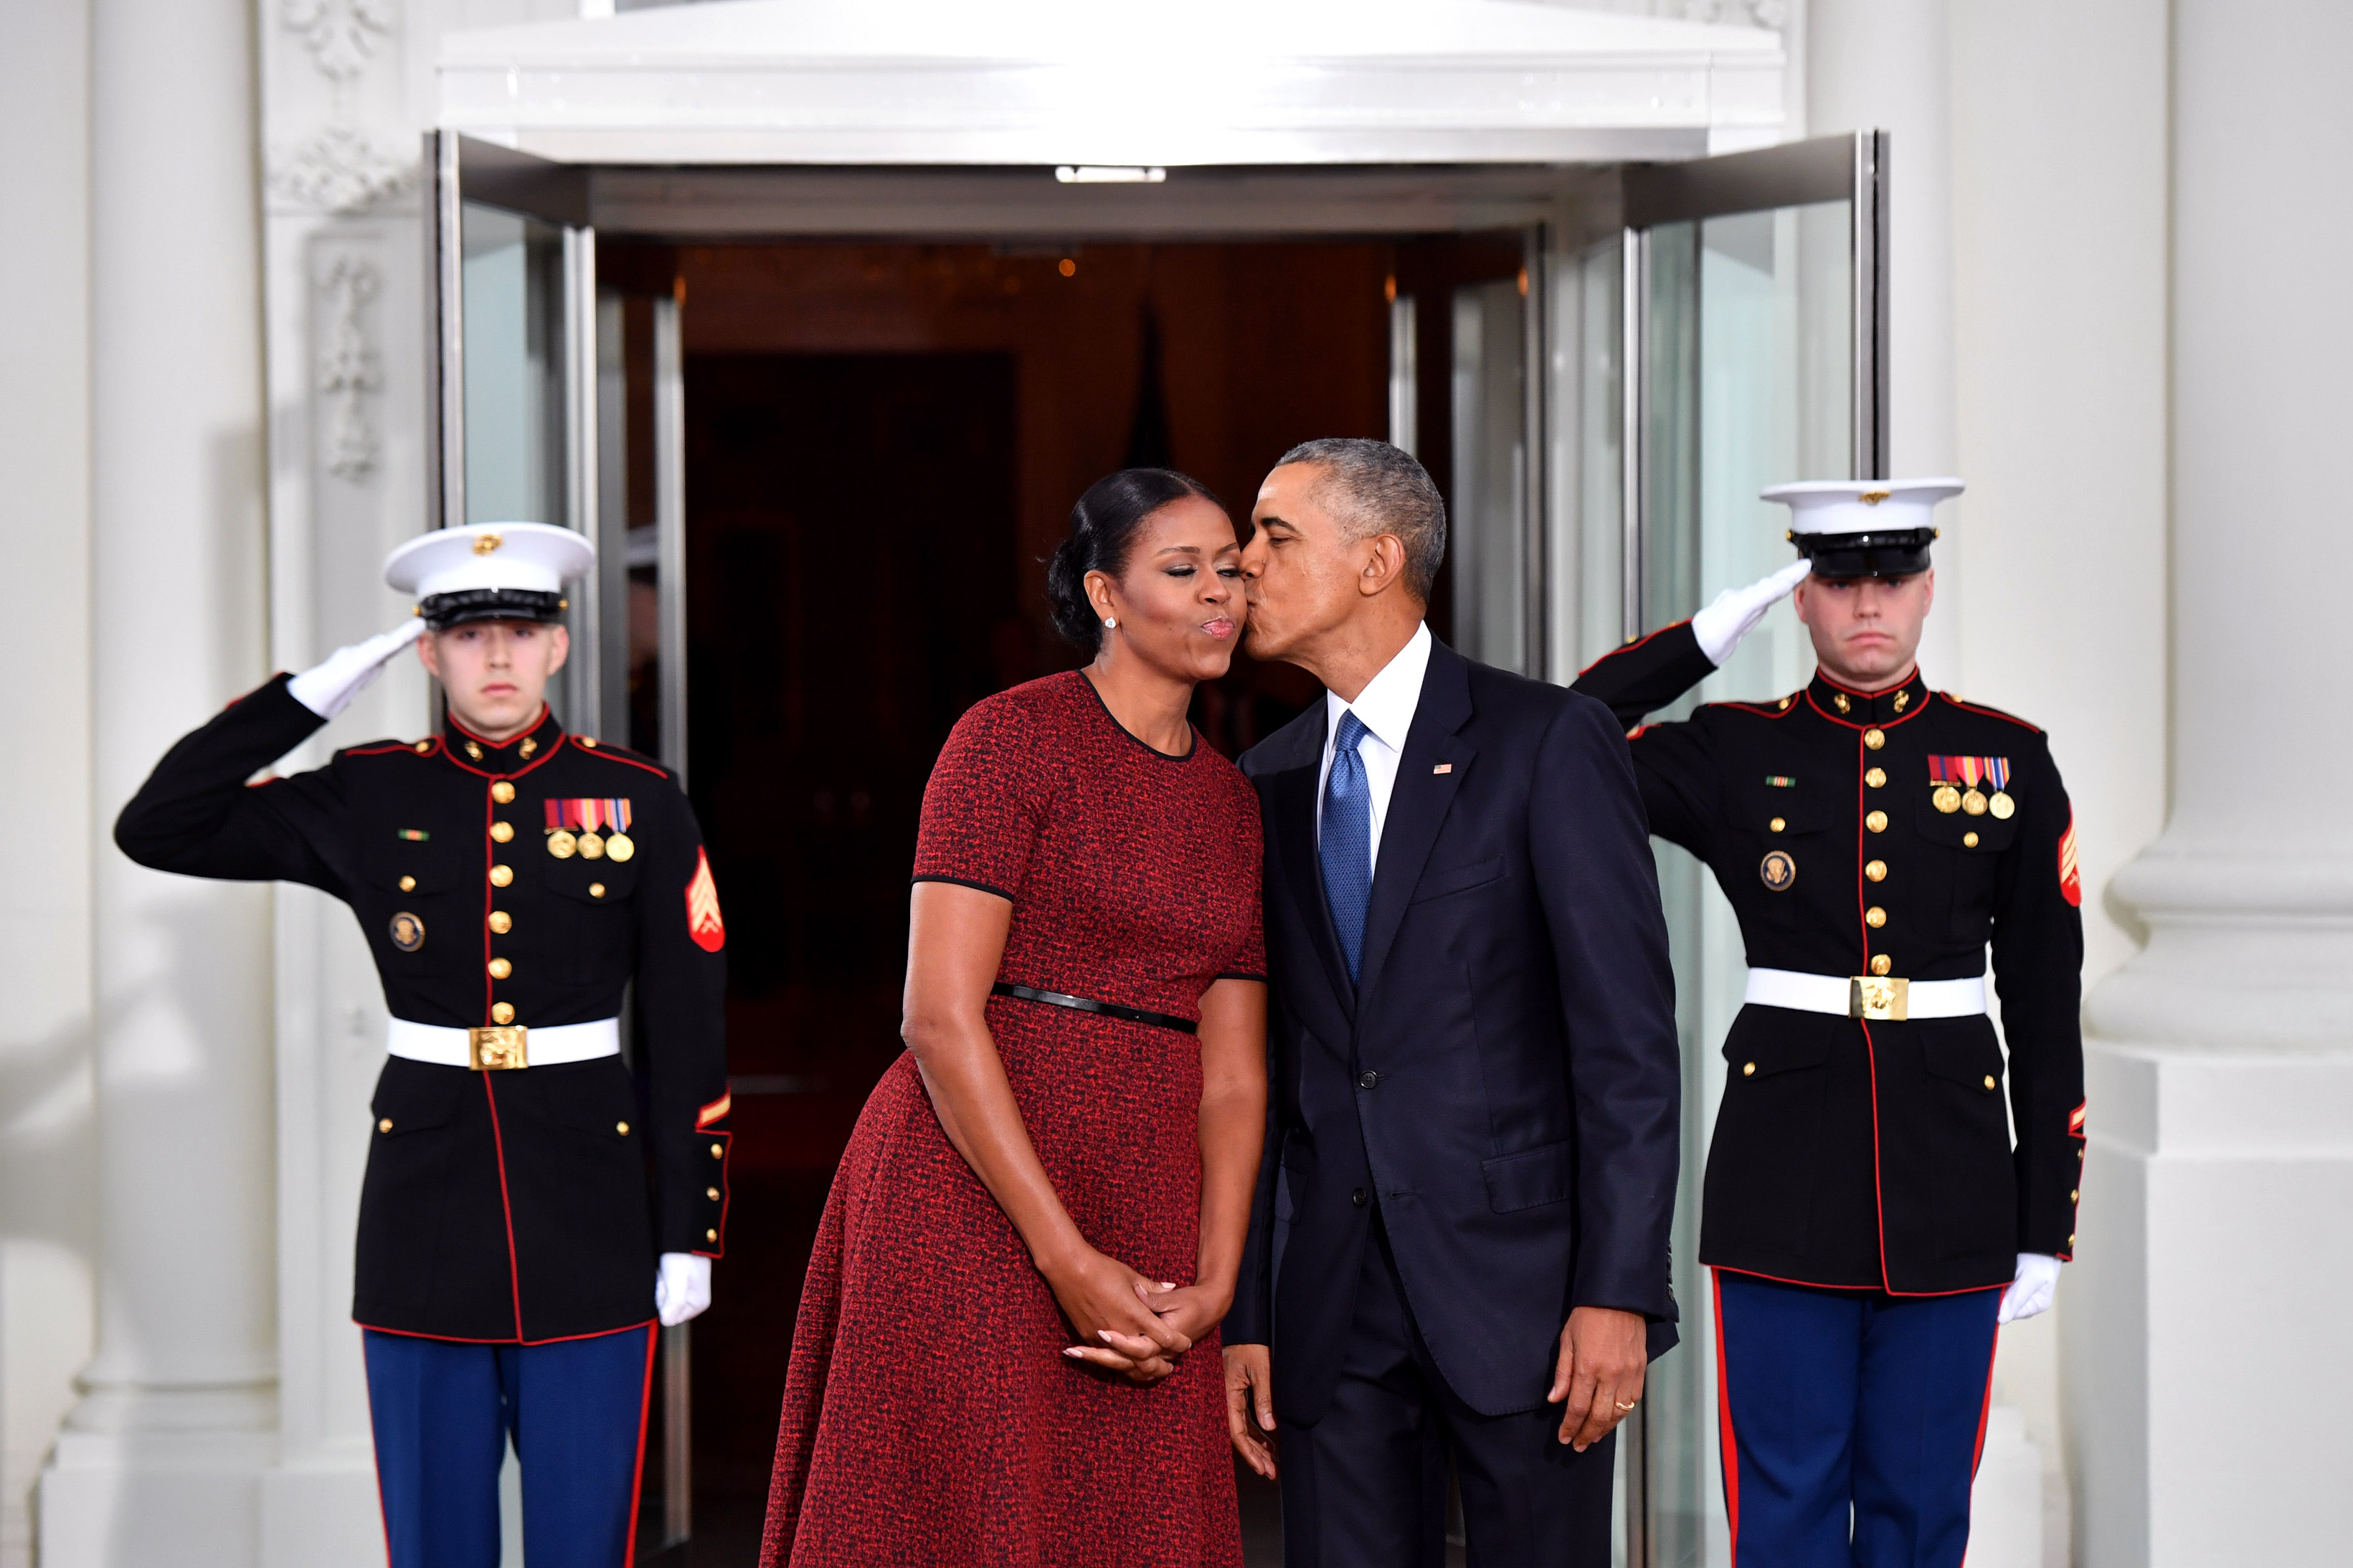 Barack Obama thanking Michelle for staying with him is making us laugh-cry